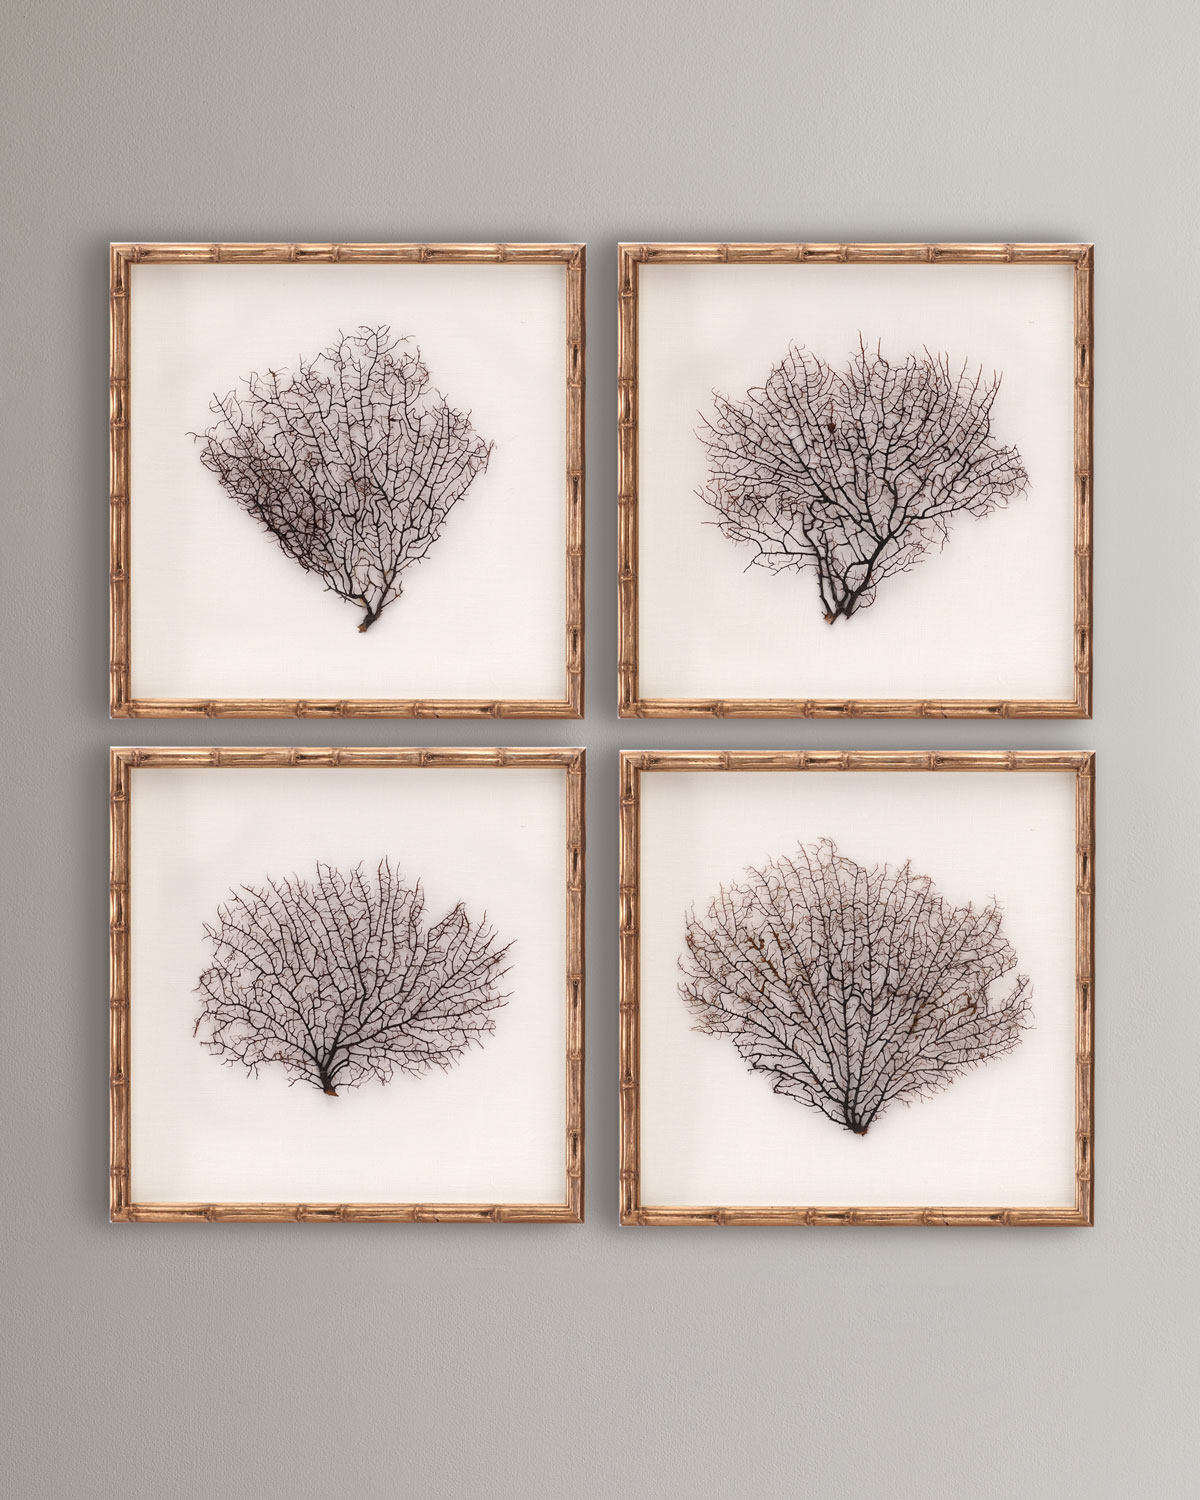 Framed Sea Fans, 4-Piece Set